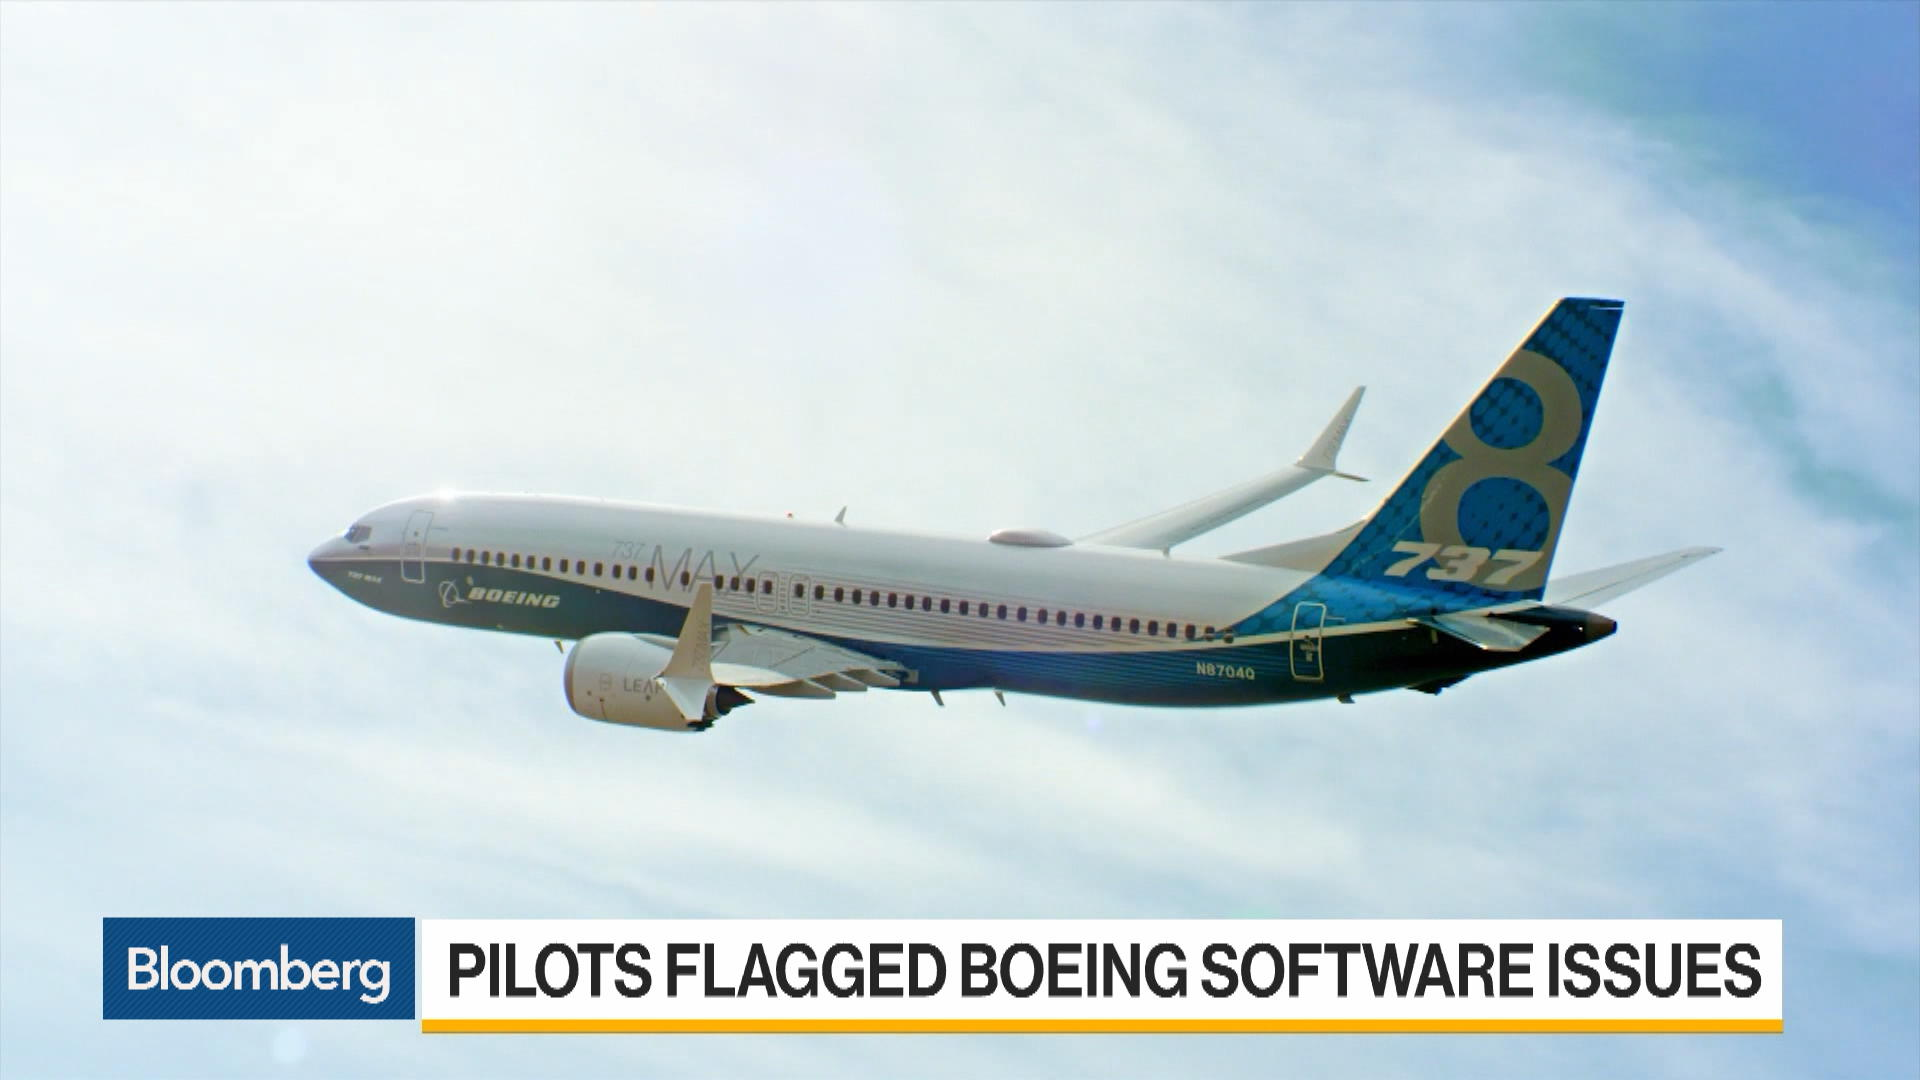 Boeing Pilots Flagged Software Problems on Jets Besides 737